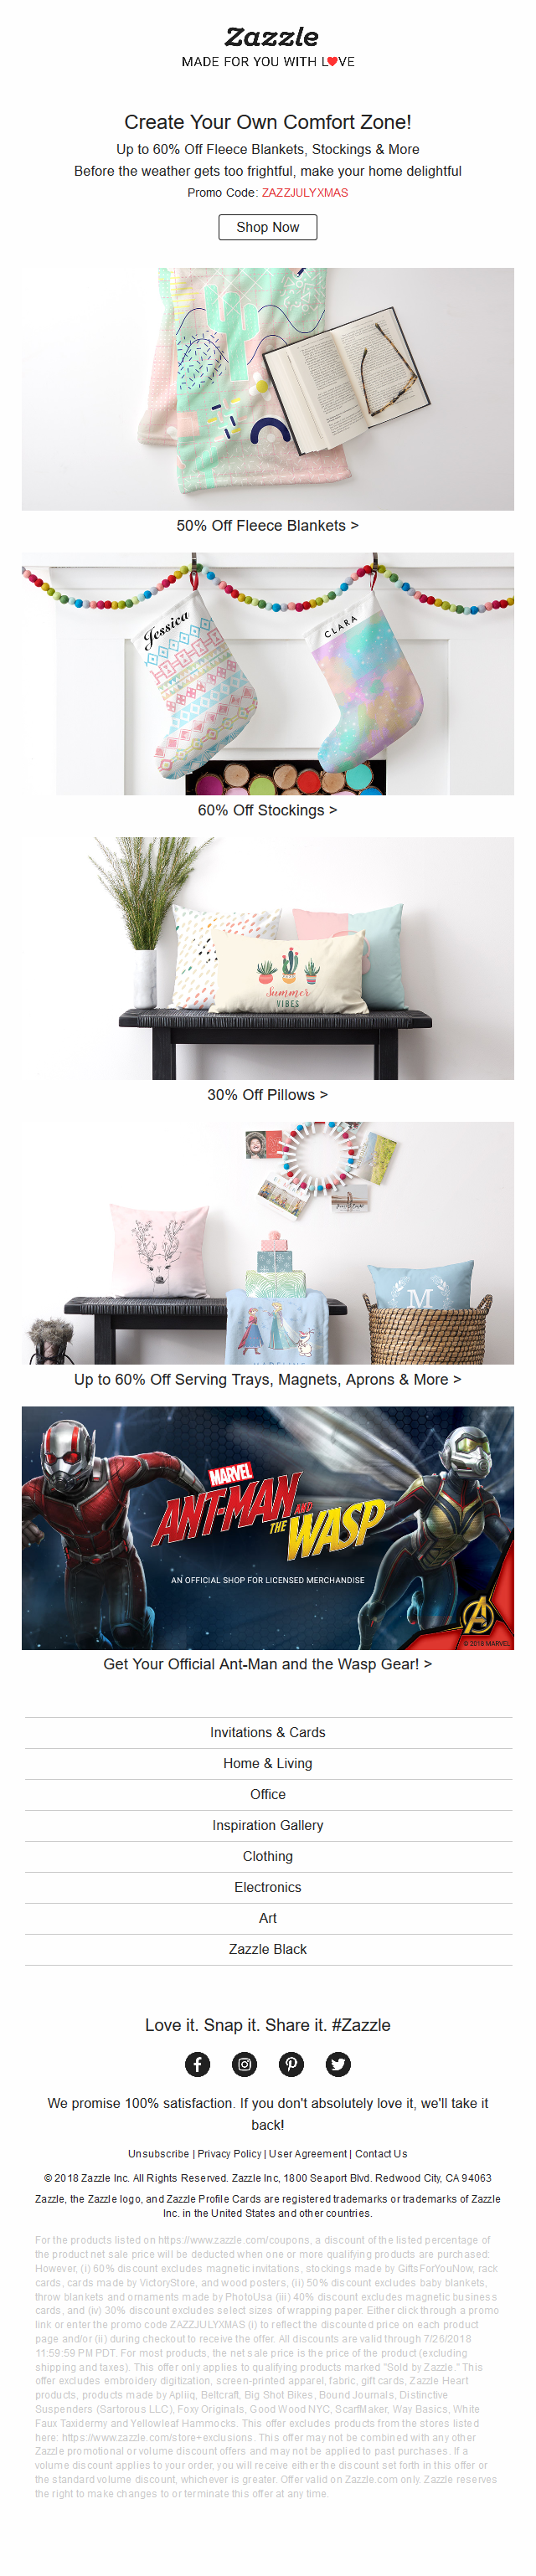 Up to 60% Off Warm Nooks & Customized Look